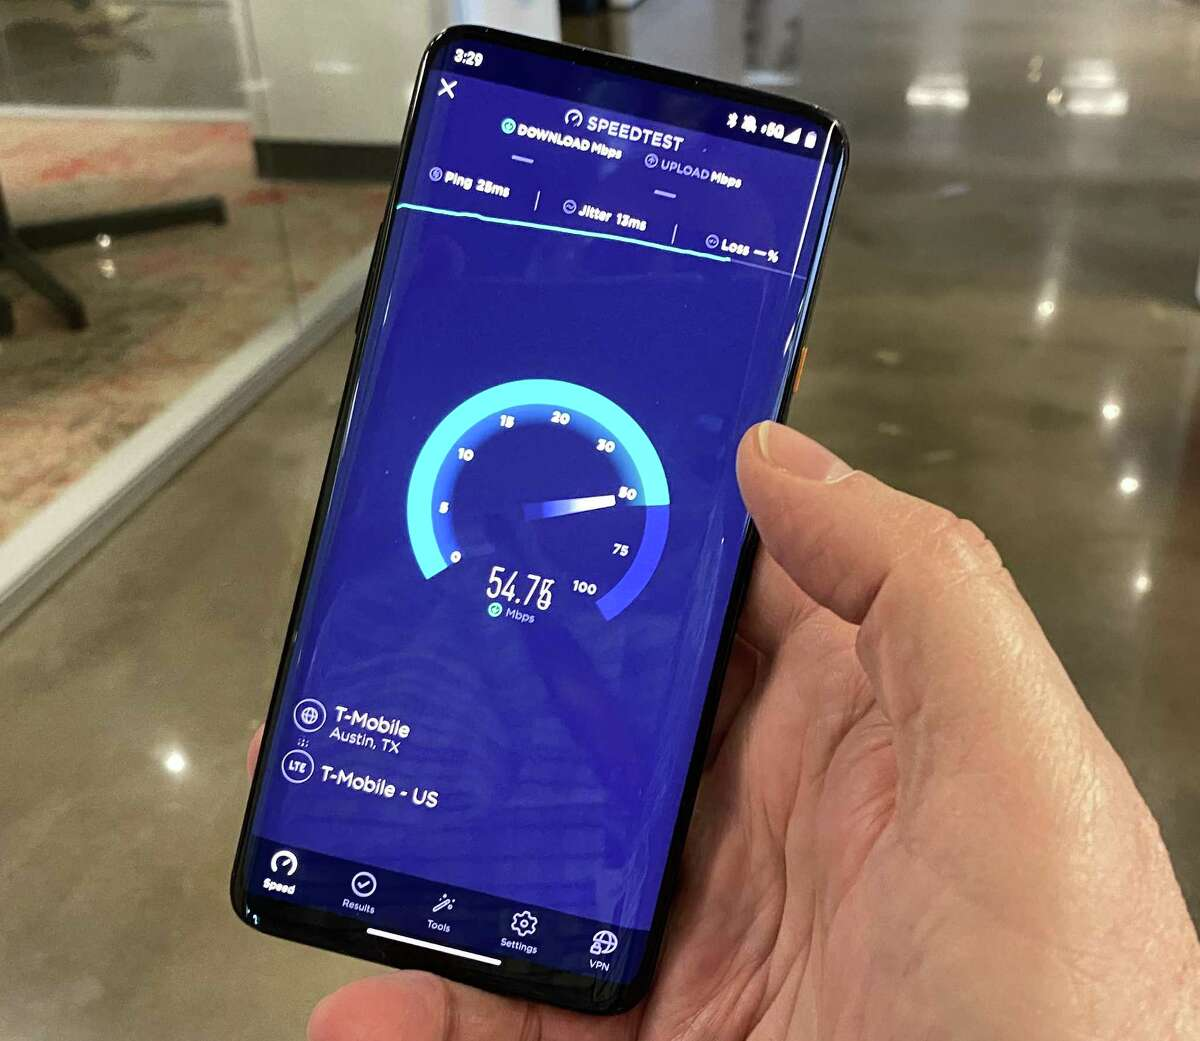 T-Mobile says its 5G speeds are about 20 percent faster than those of 4G LTE. But the carrier is in the process of integrating Sprint's faster 5G network, and future phones will have zippier speeds.